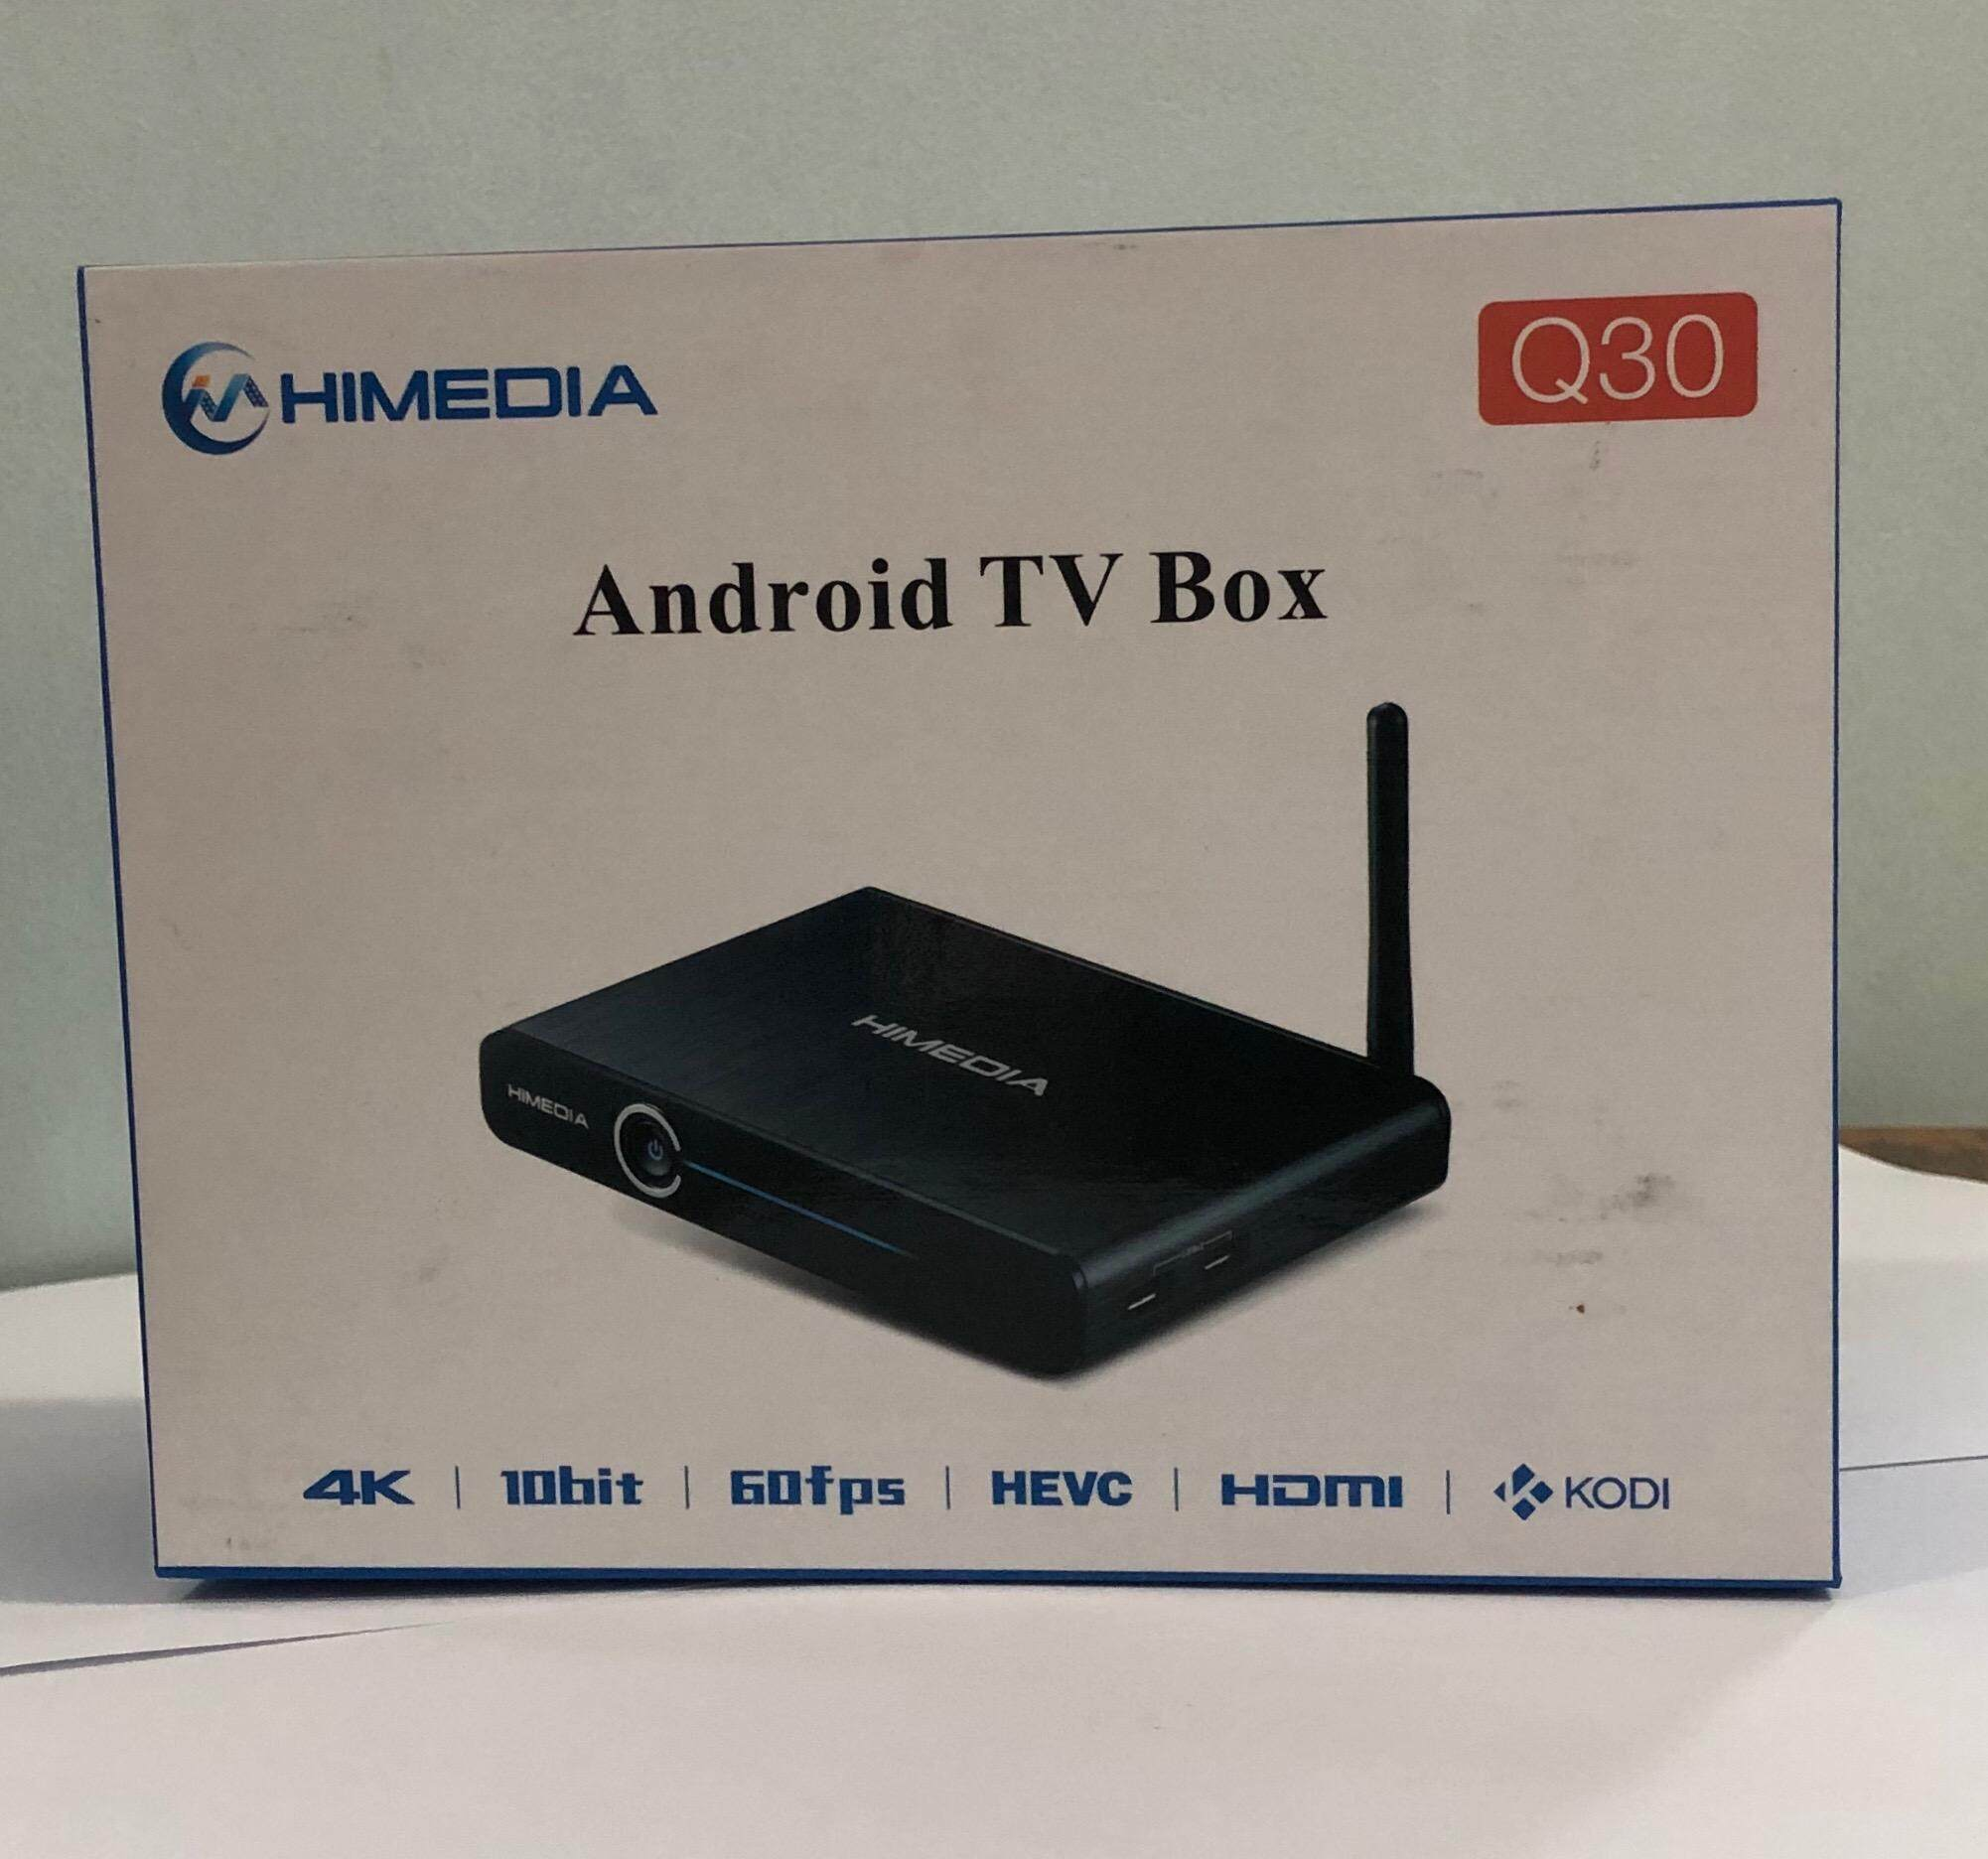 ชัยนาท HIMEDIA Q30 Quad core Android  TV Box 2GB/8GB USB 3.0 (Black)